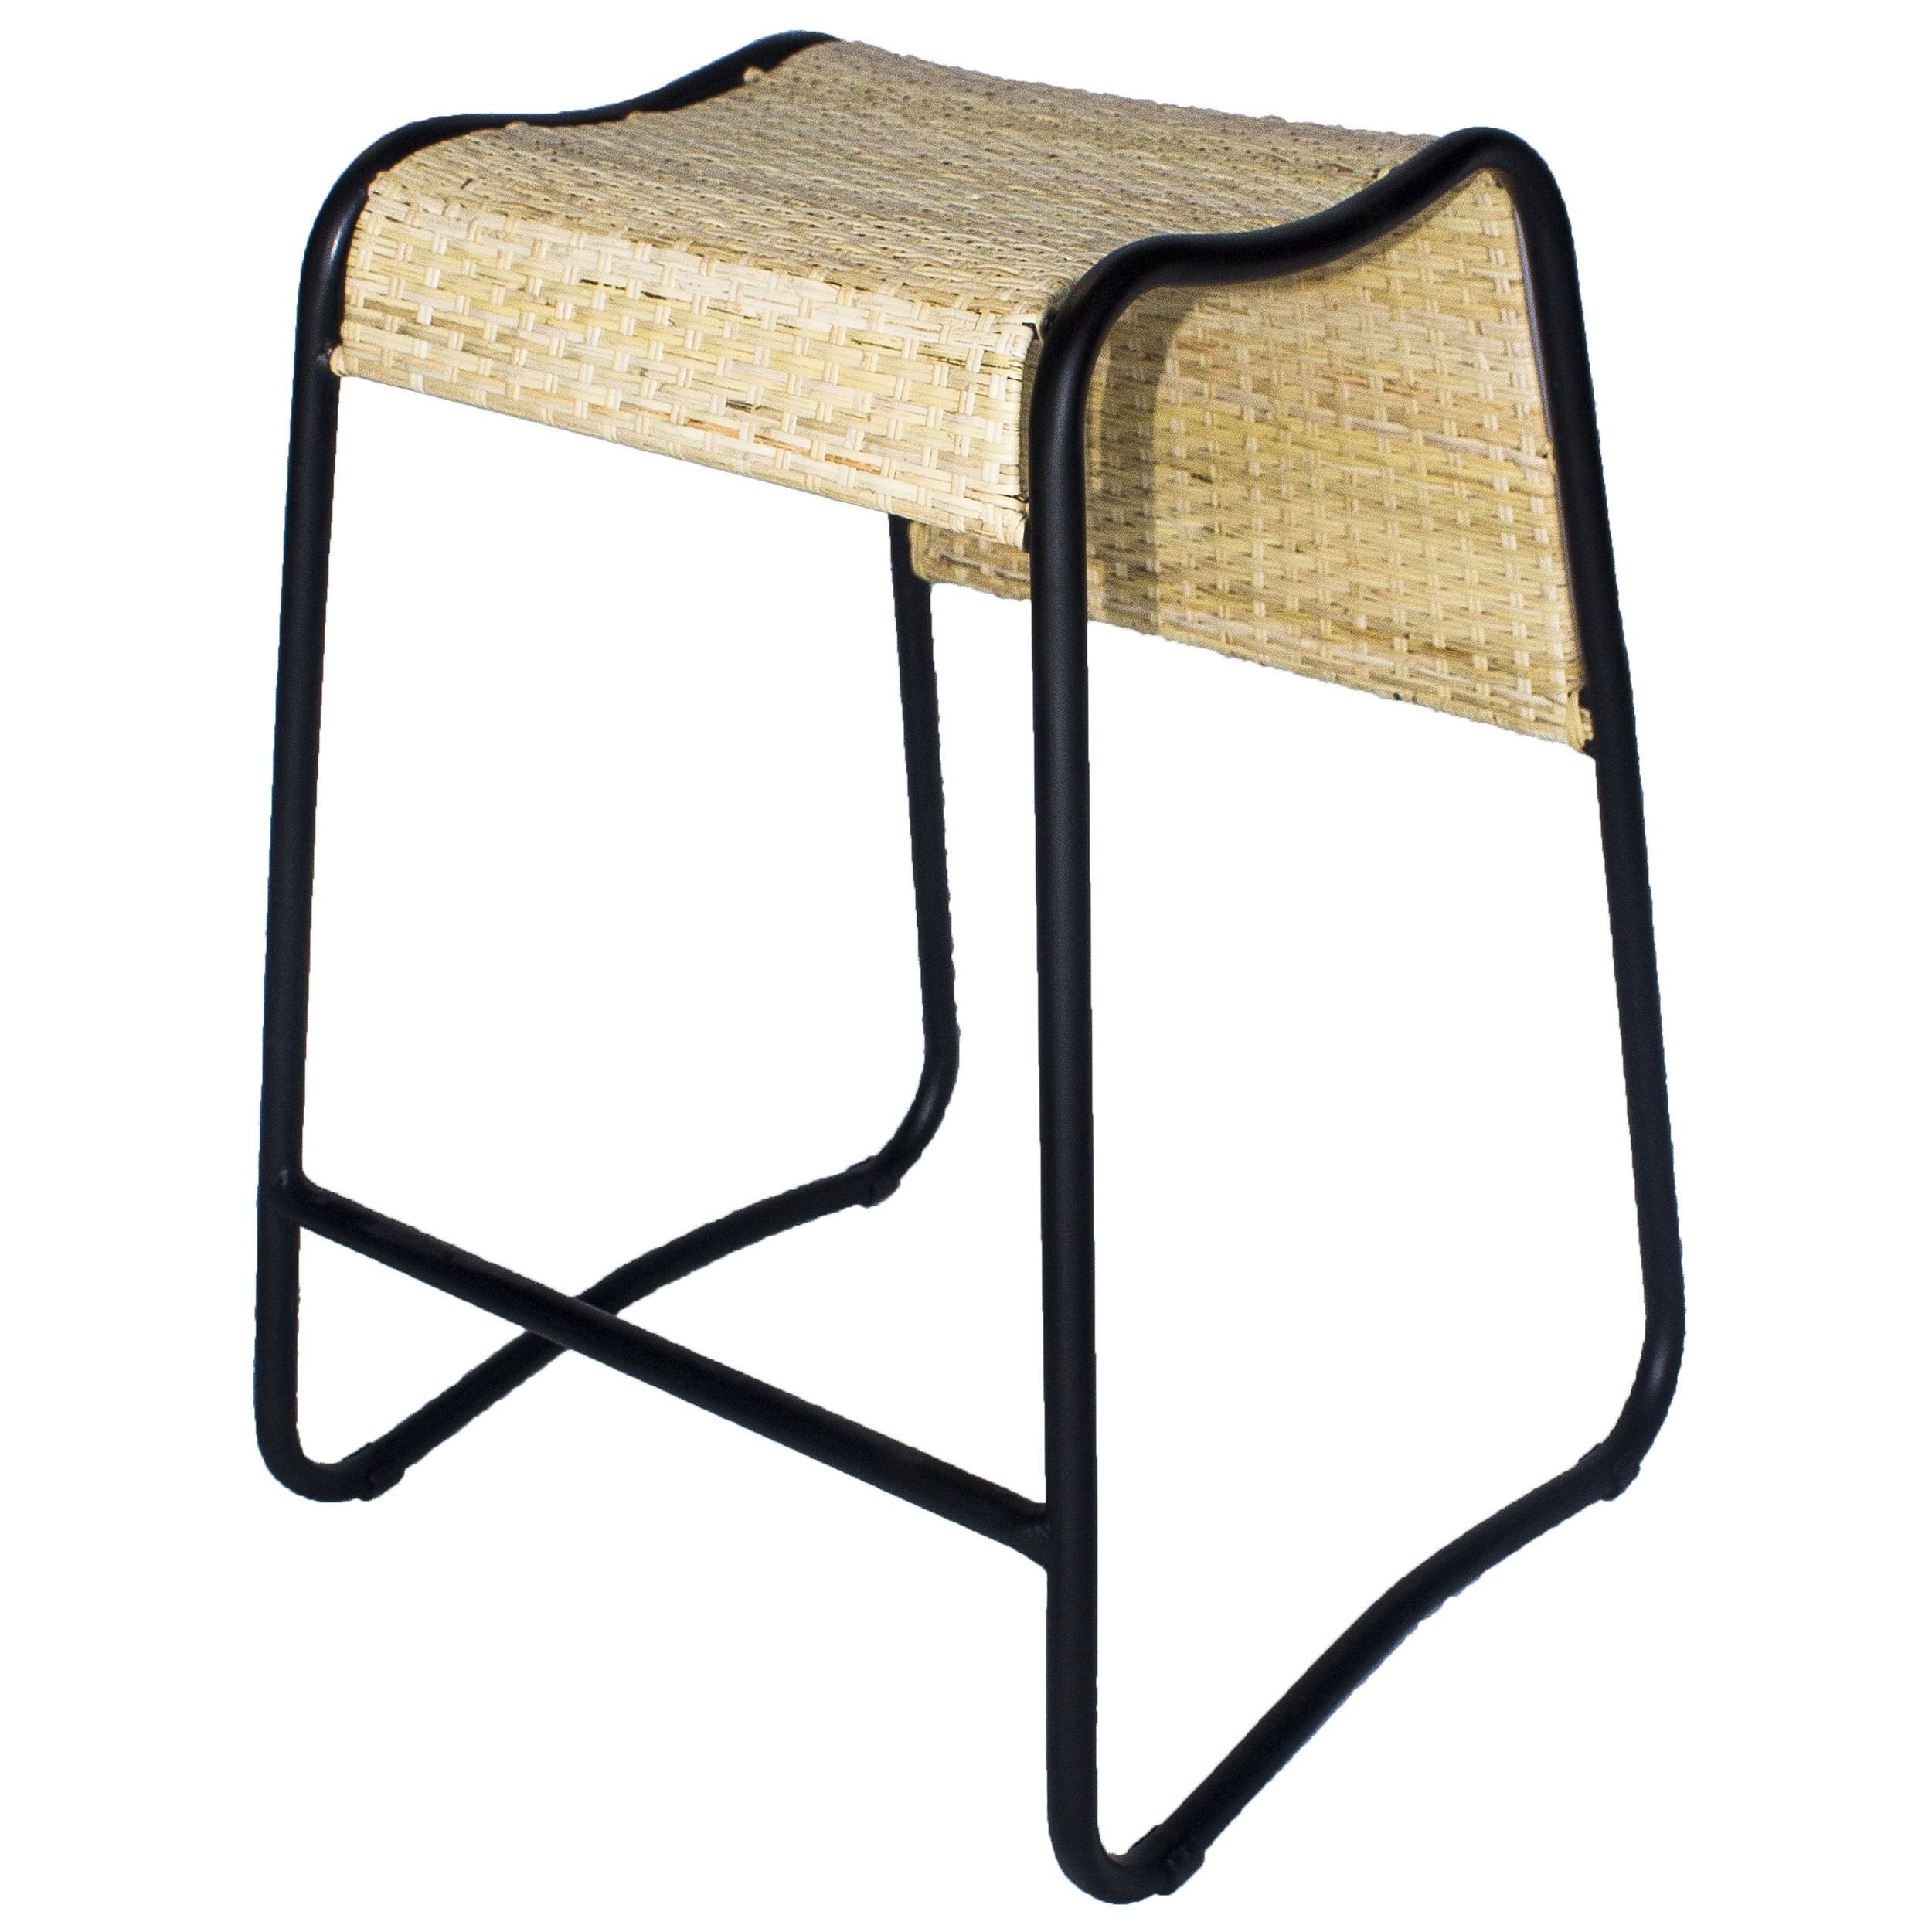 for wicker seagrass stool friendly natural images bar eco chair cushions random kitchen stools indoor counter rattan baka of best dining furniture